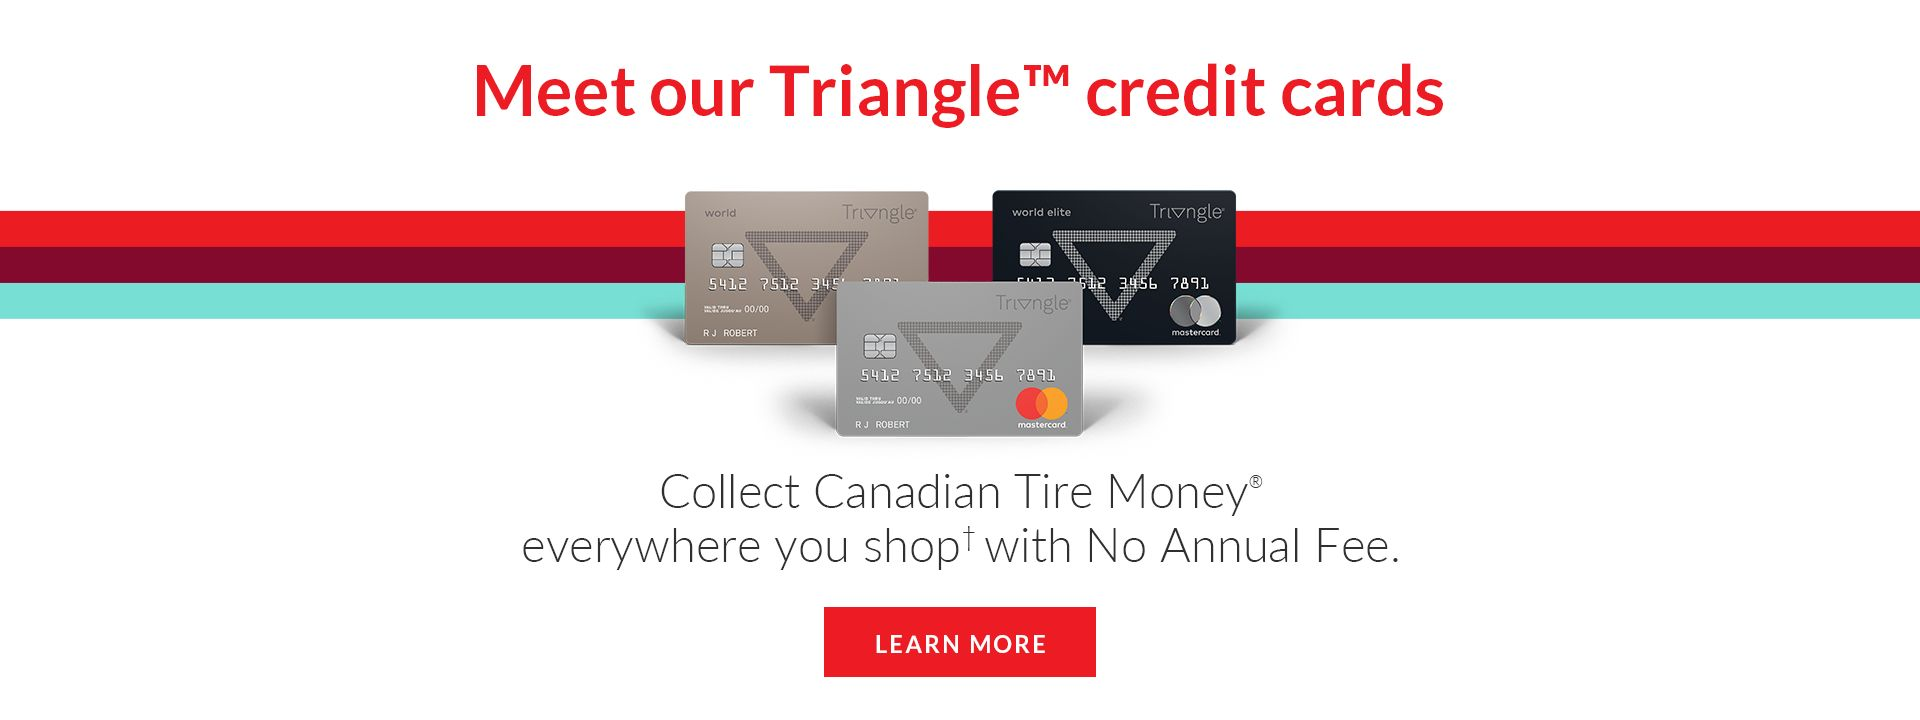 Meet Our Triangle Credit Cards - Learn More